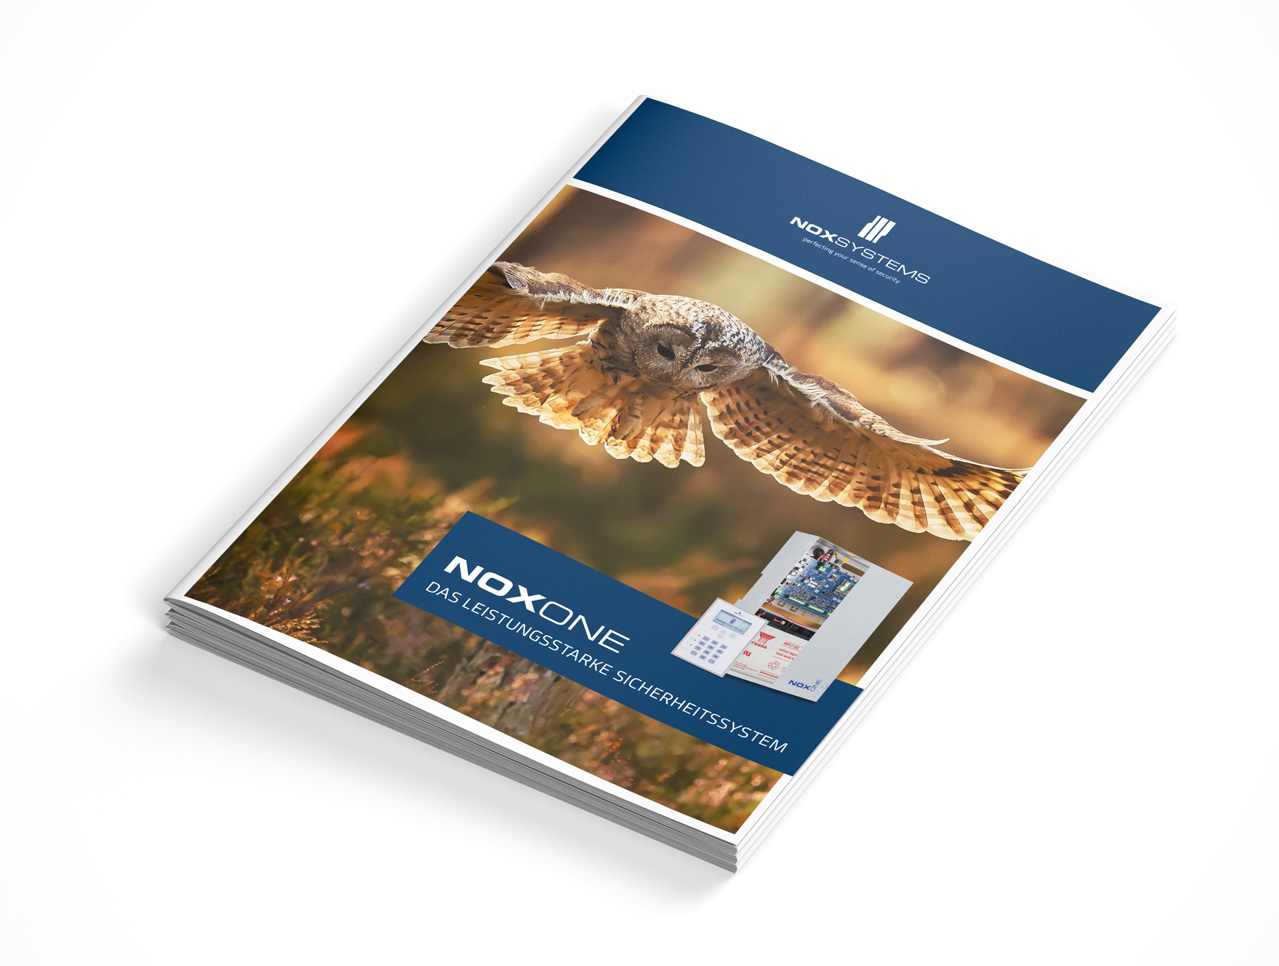 The new NOX brochures